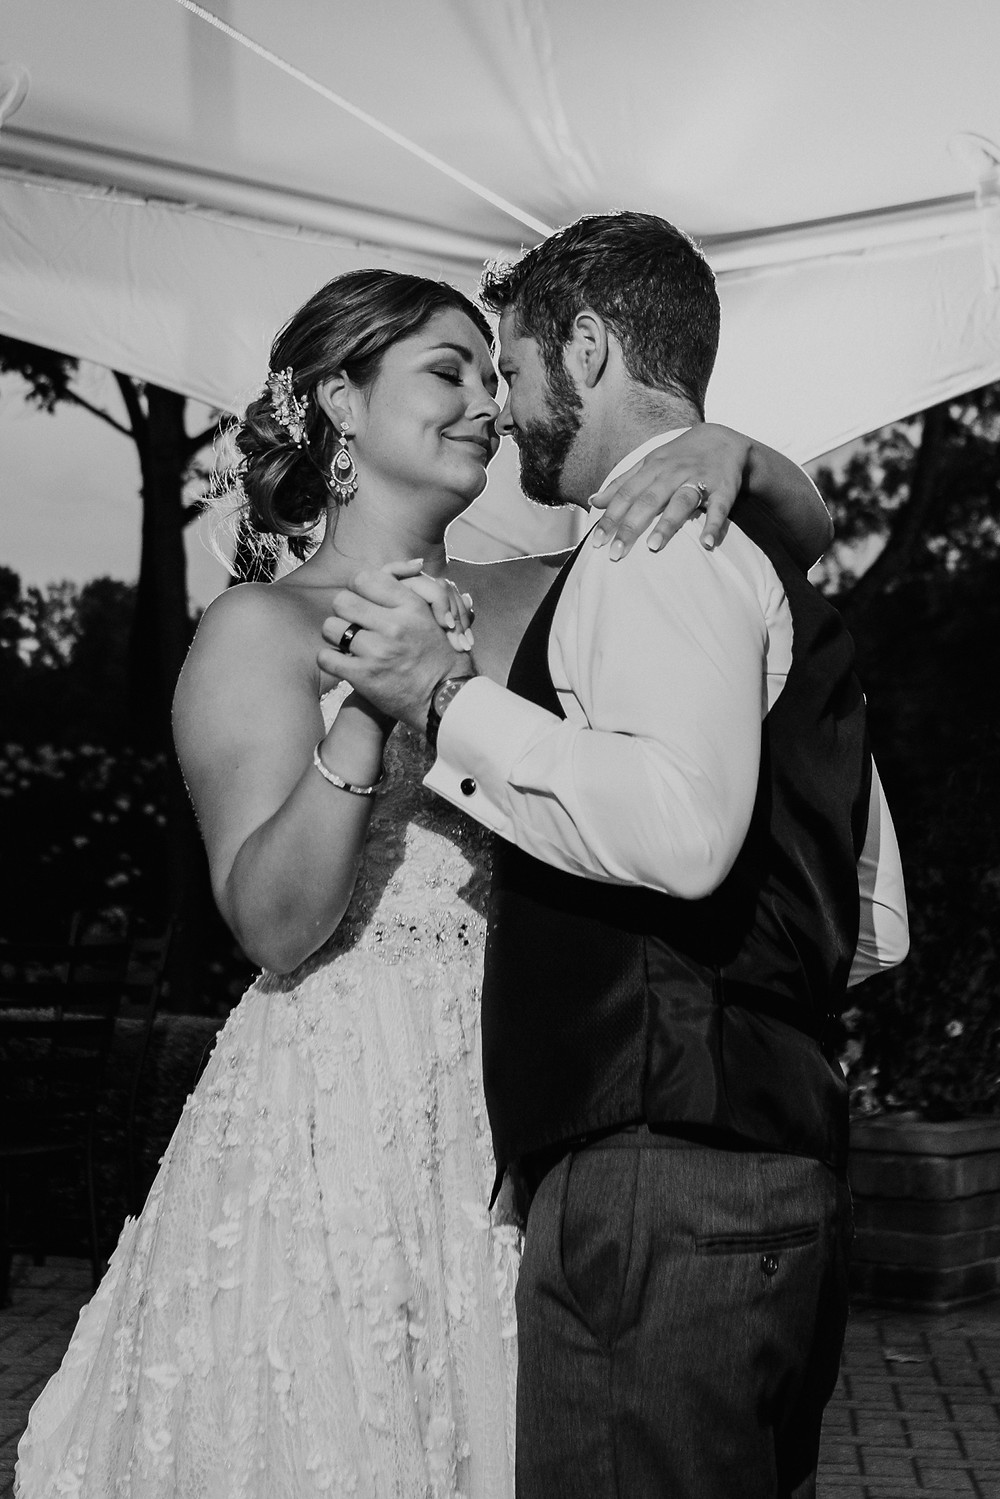 First dance as married couple in Metro Detroit. Photographed by Nicole Leanne Photography.